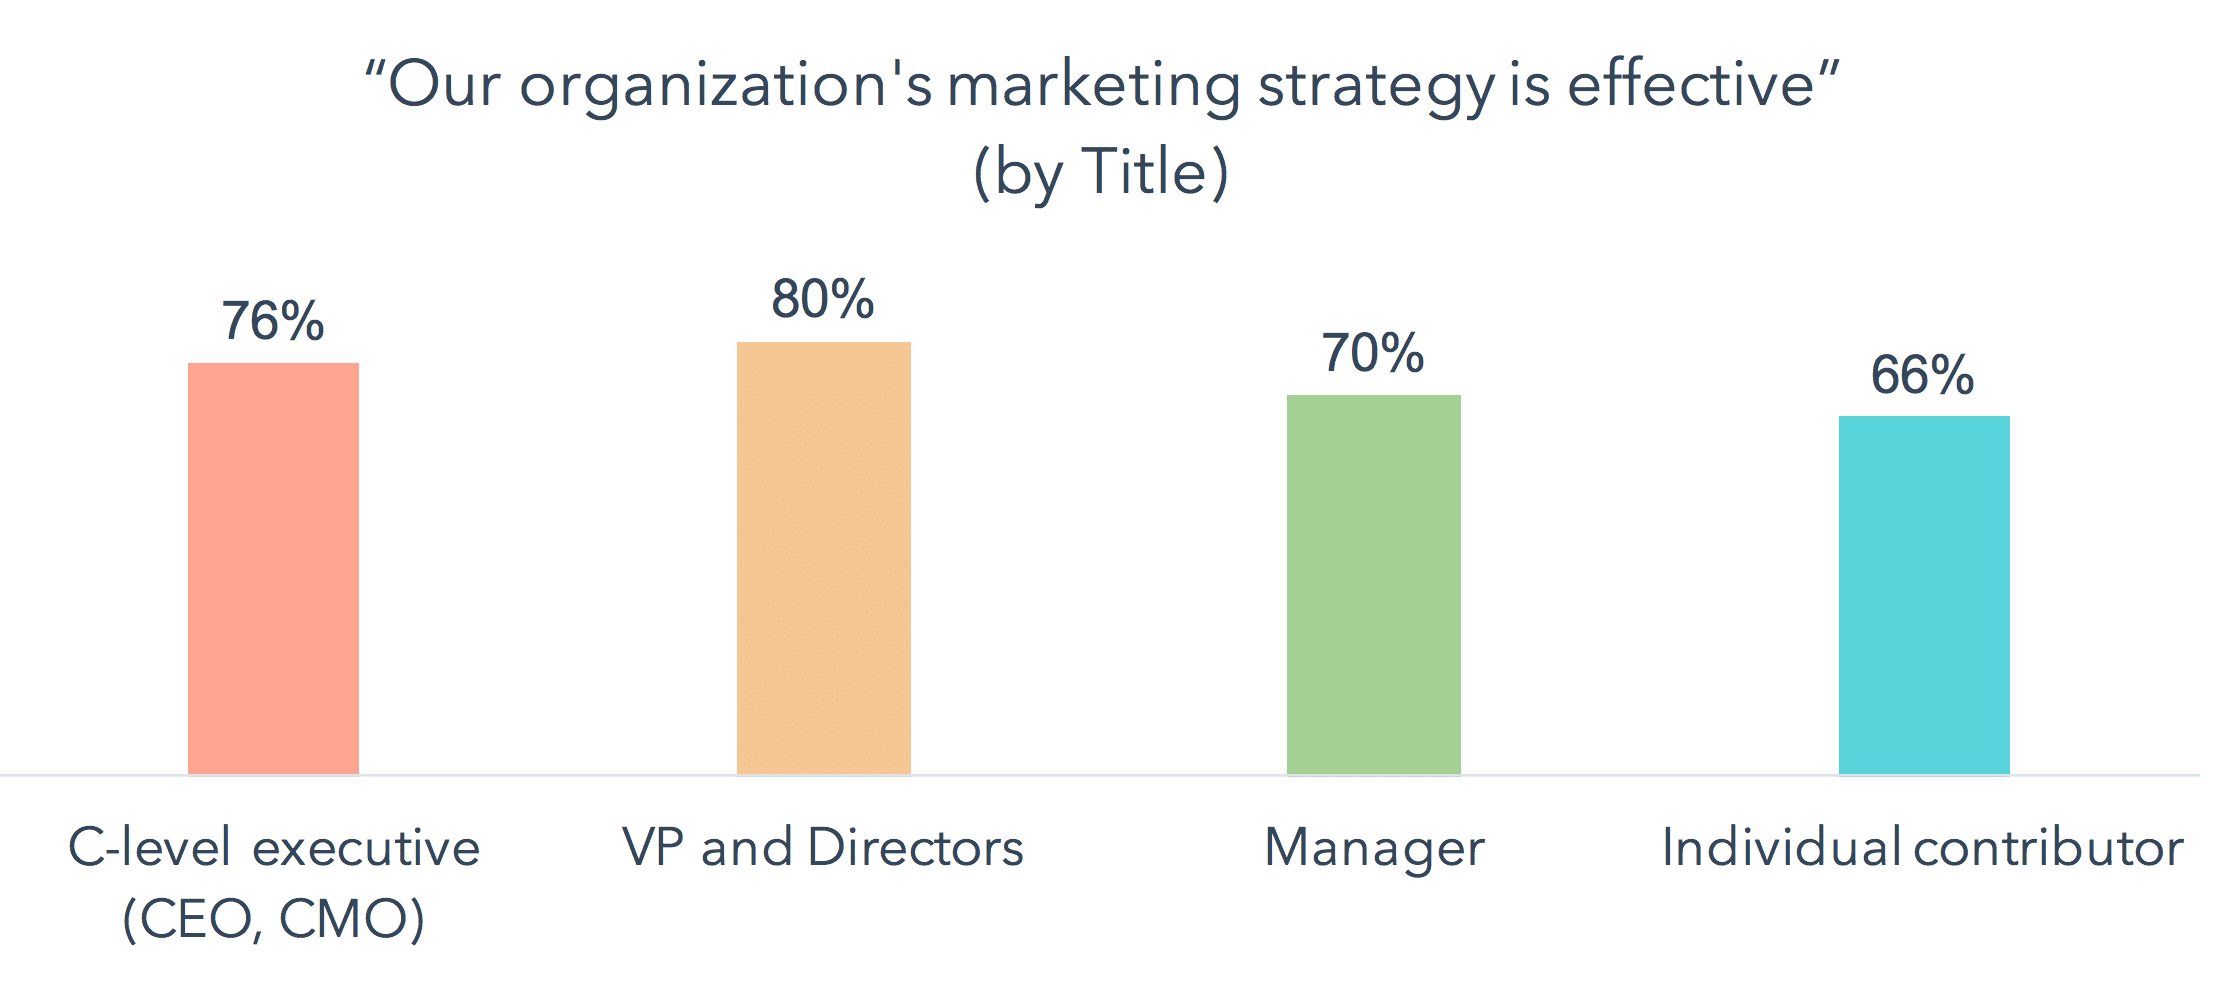 junior marketers have less faith in the strategy set out by managers